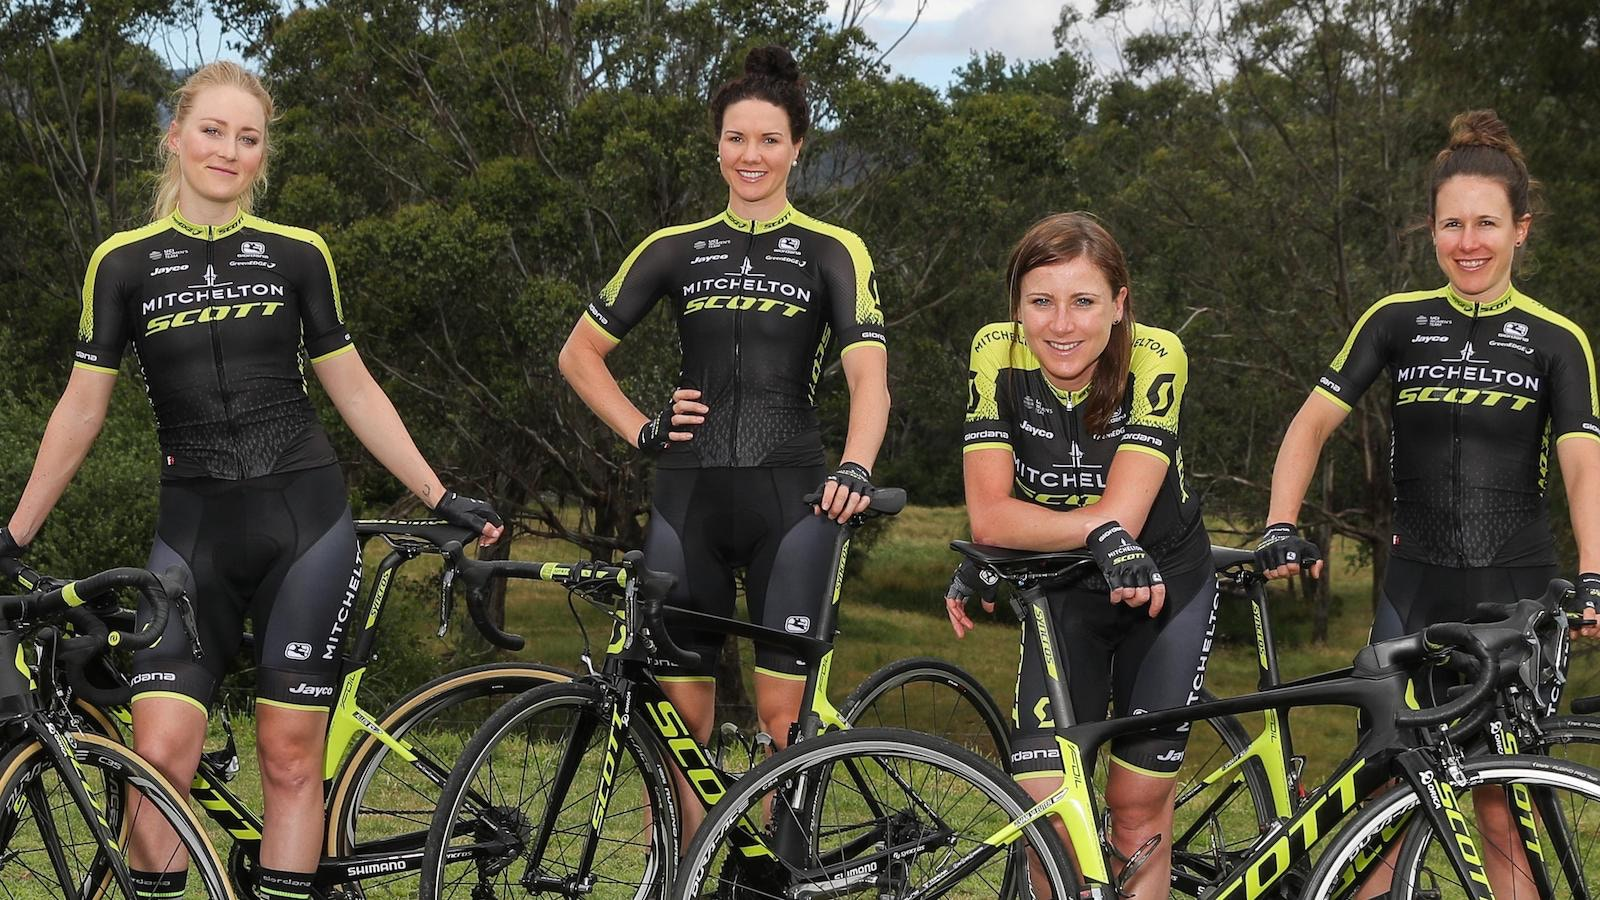 Introducing Mitchelton-Scott: the Next Generation of the Australian WorldTour Team